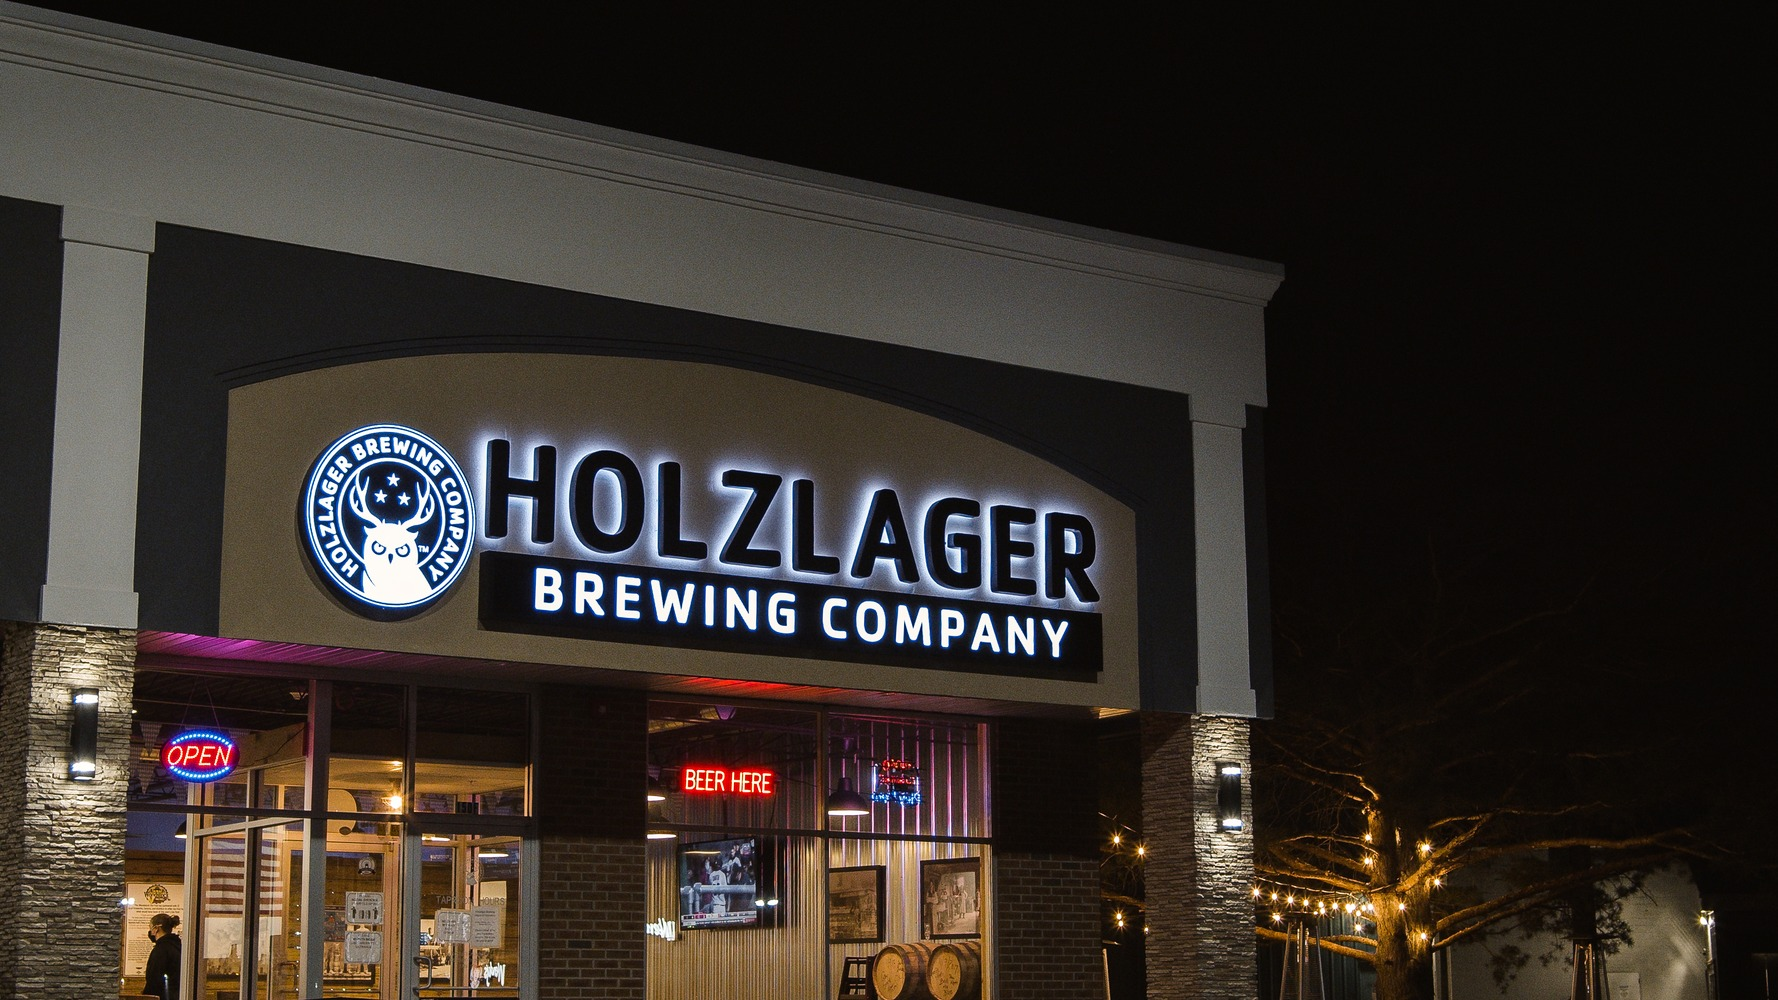 Holzlager Brewing Company